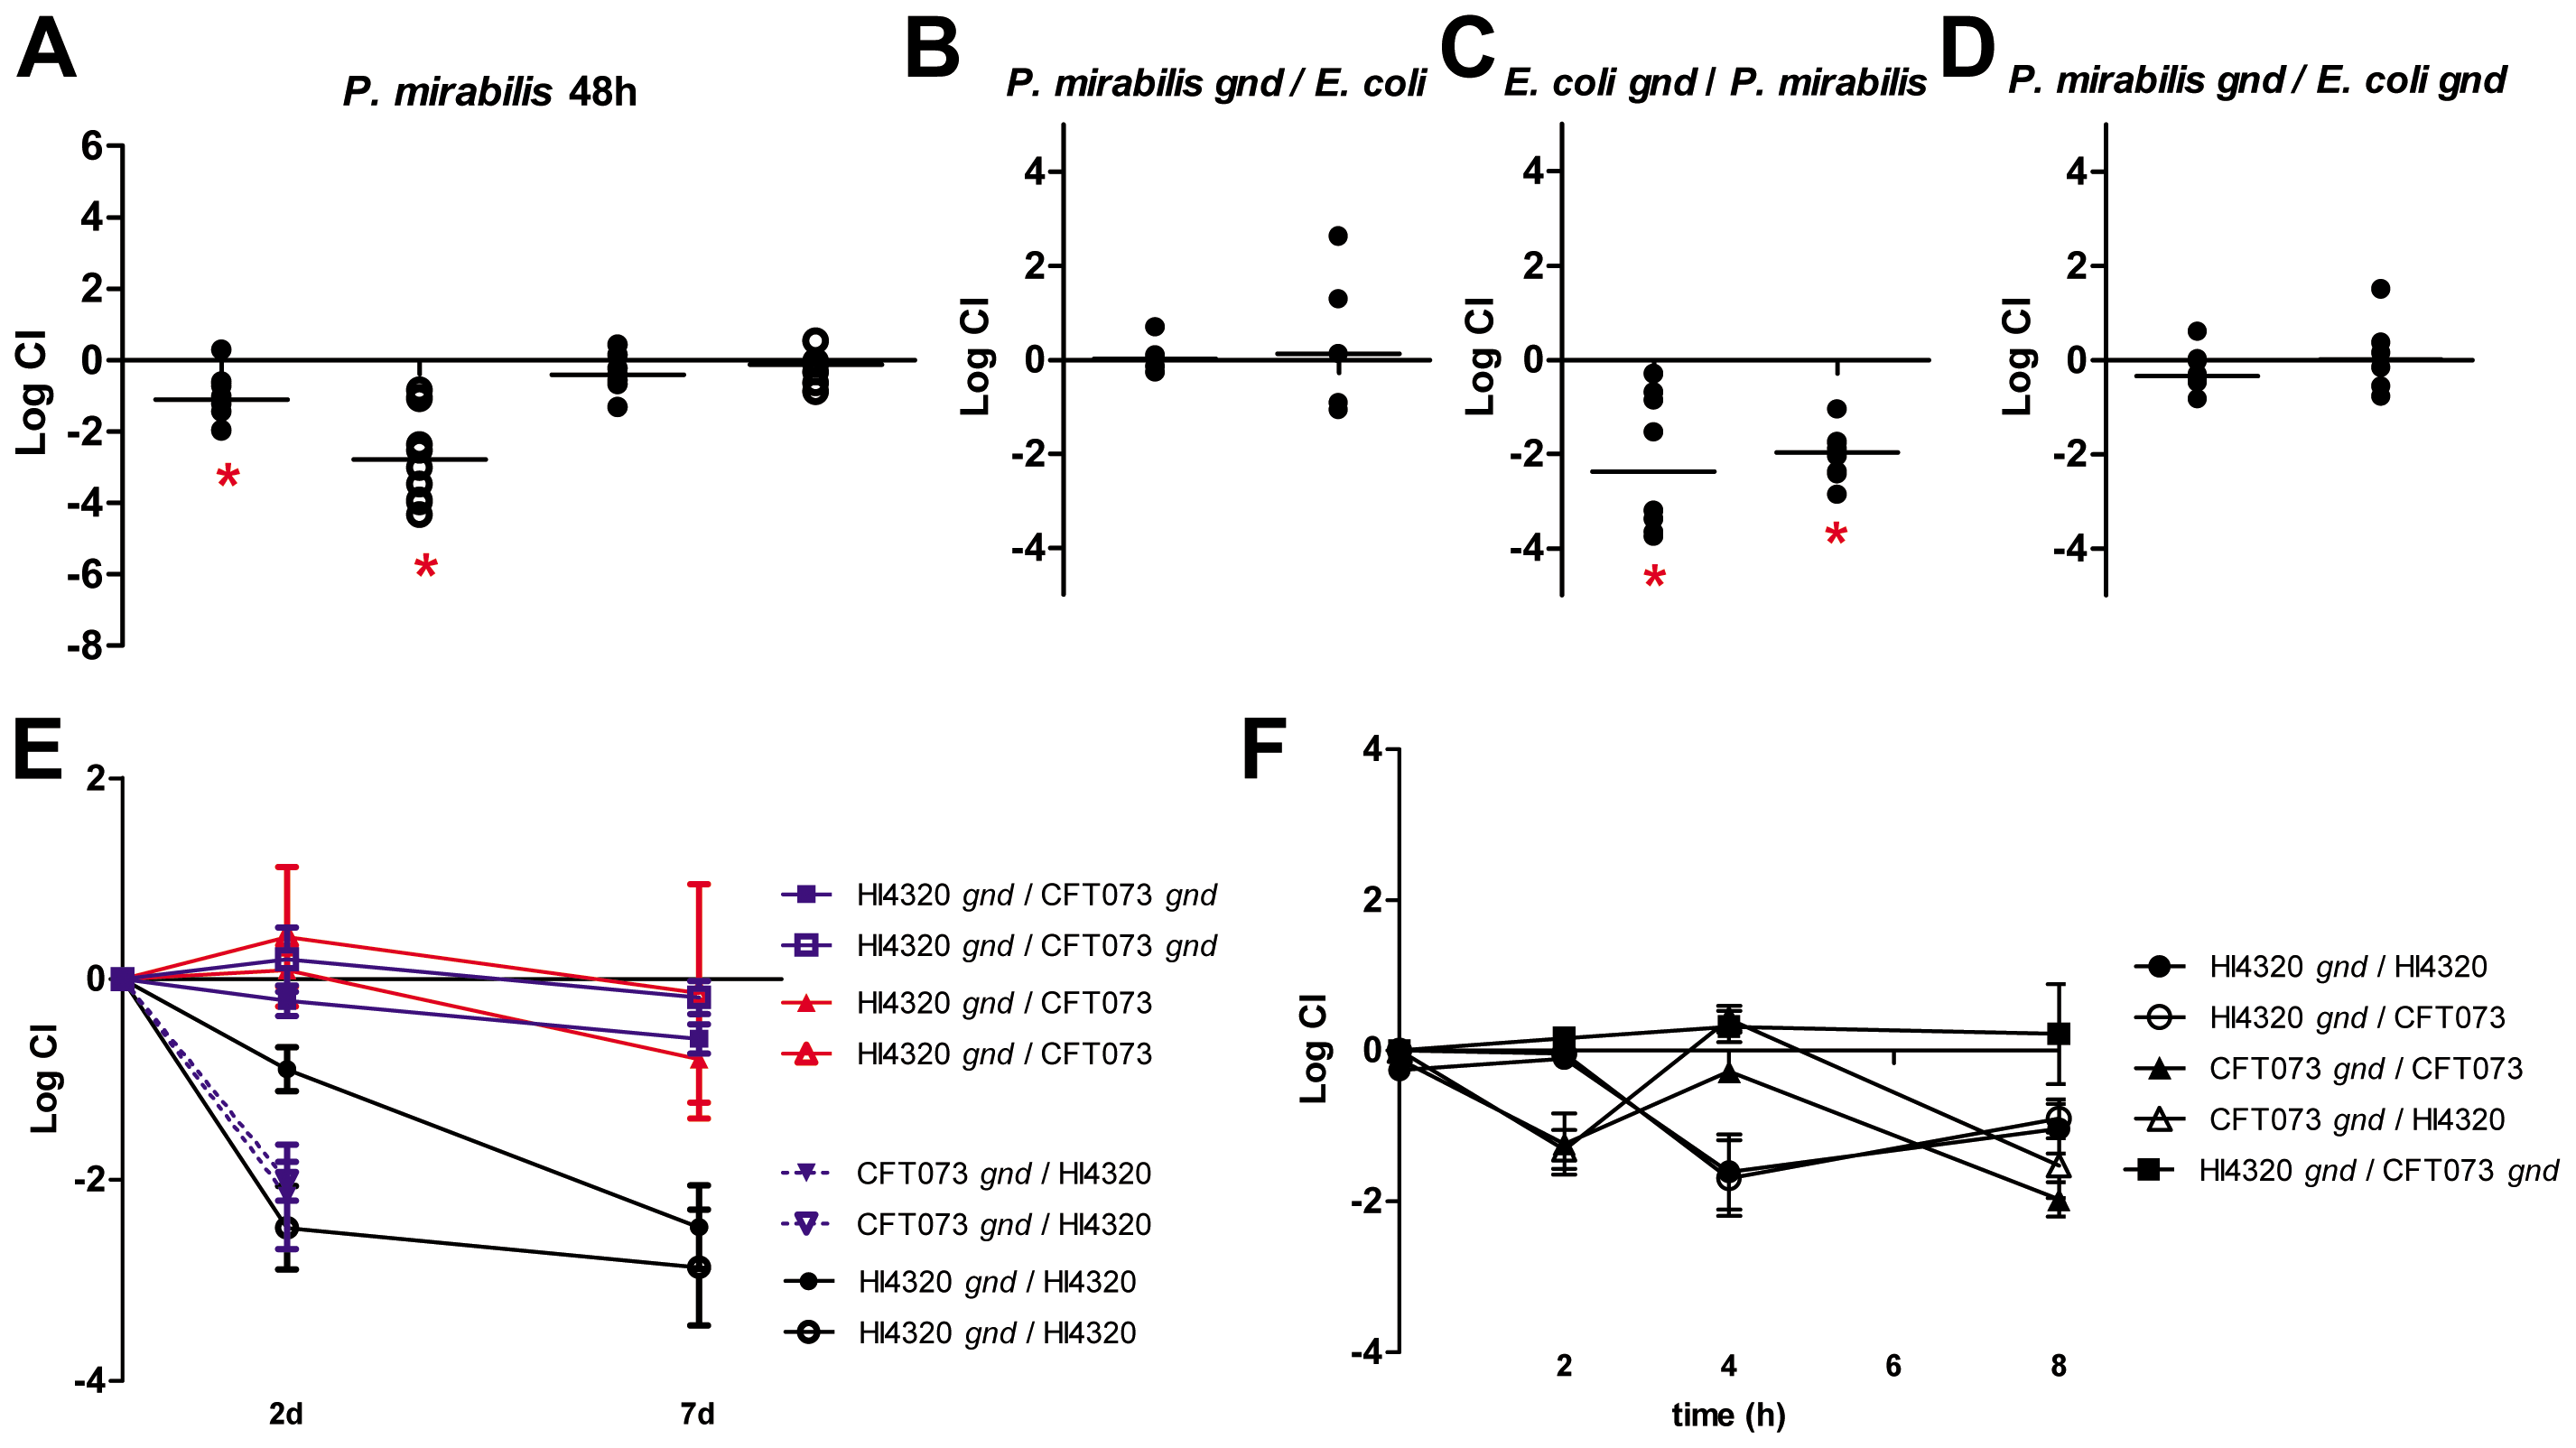 Polymicrobial infection alters central metabolism requirements for <i>E. coli</i> and <i>P. mirabilis</i>.